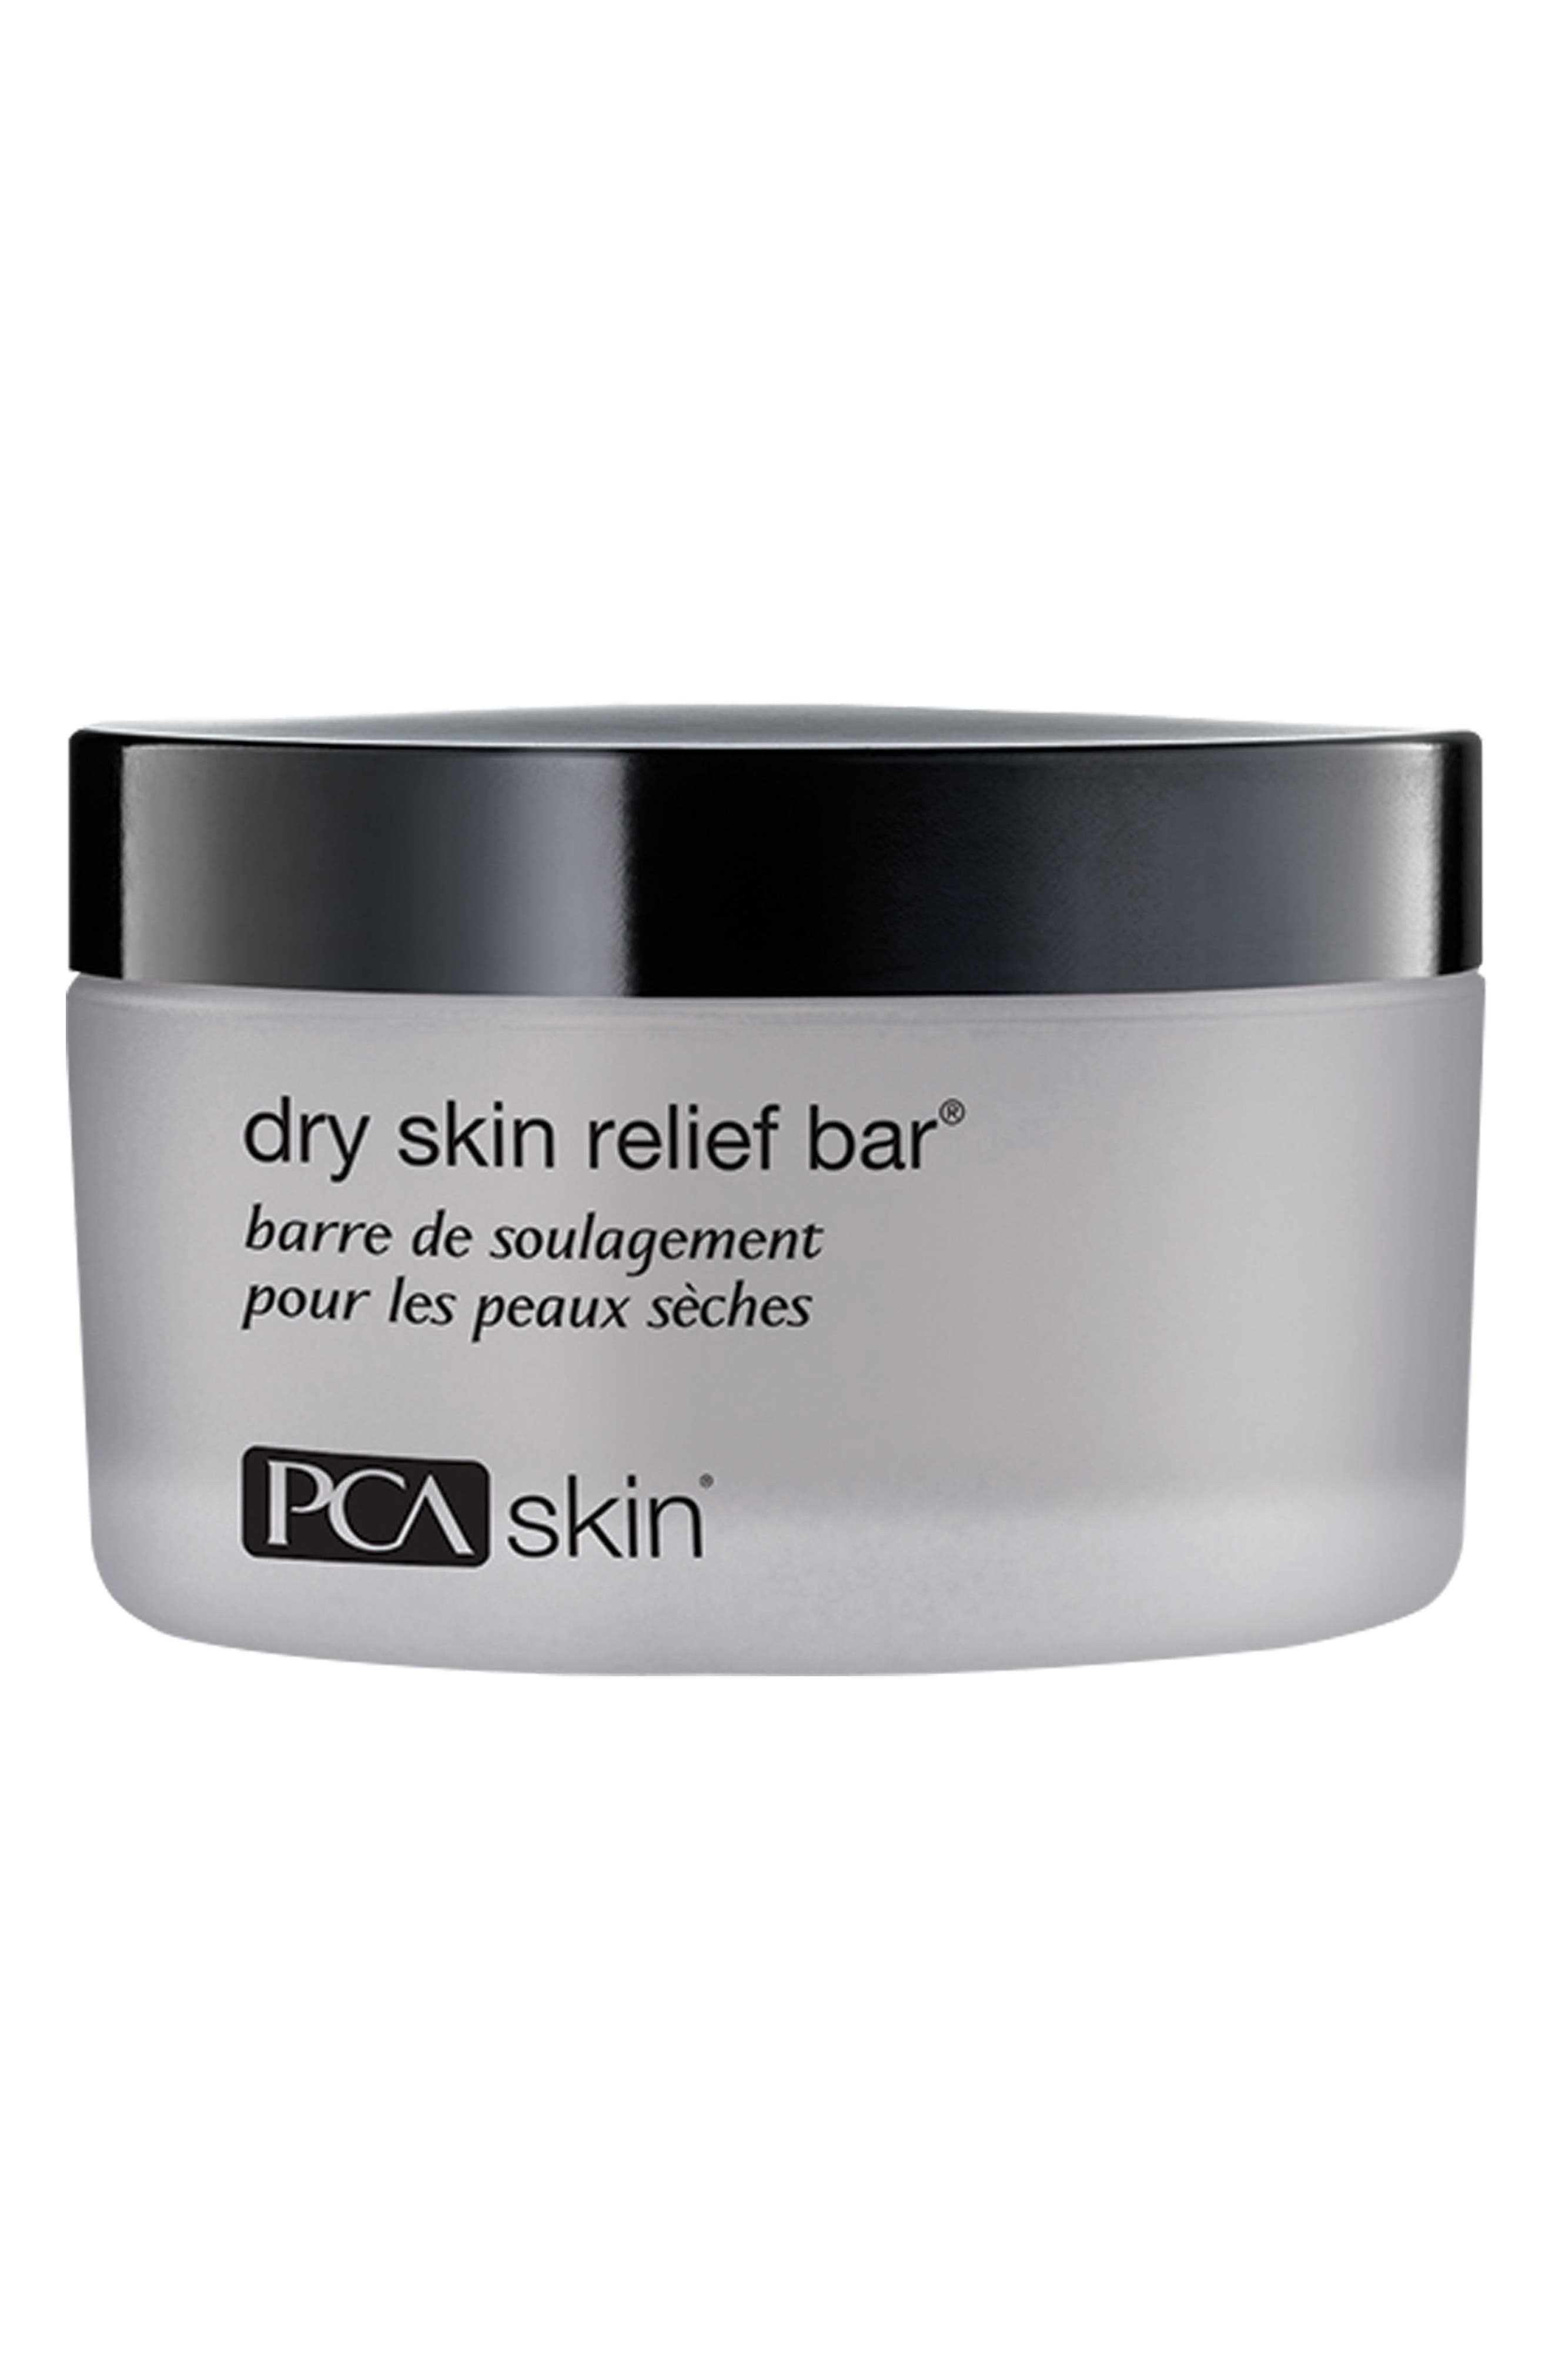 Alternate Image 1 Selected - PCA SKIN Dry Skin Relief Bar